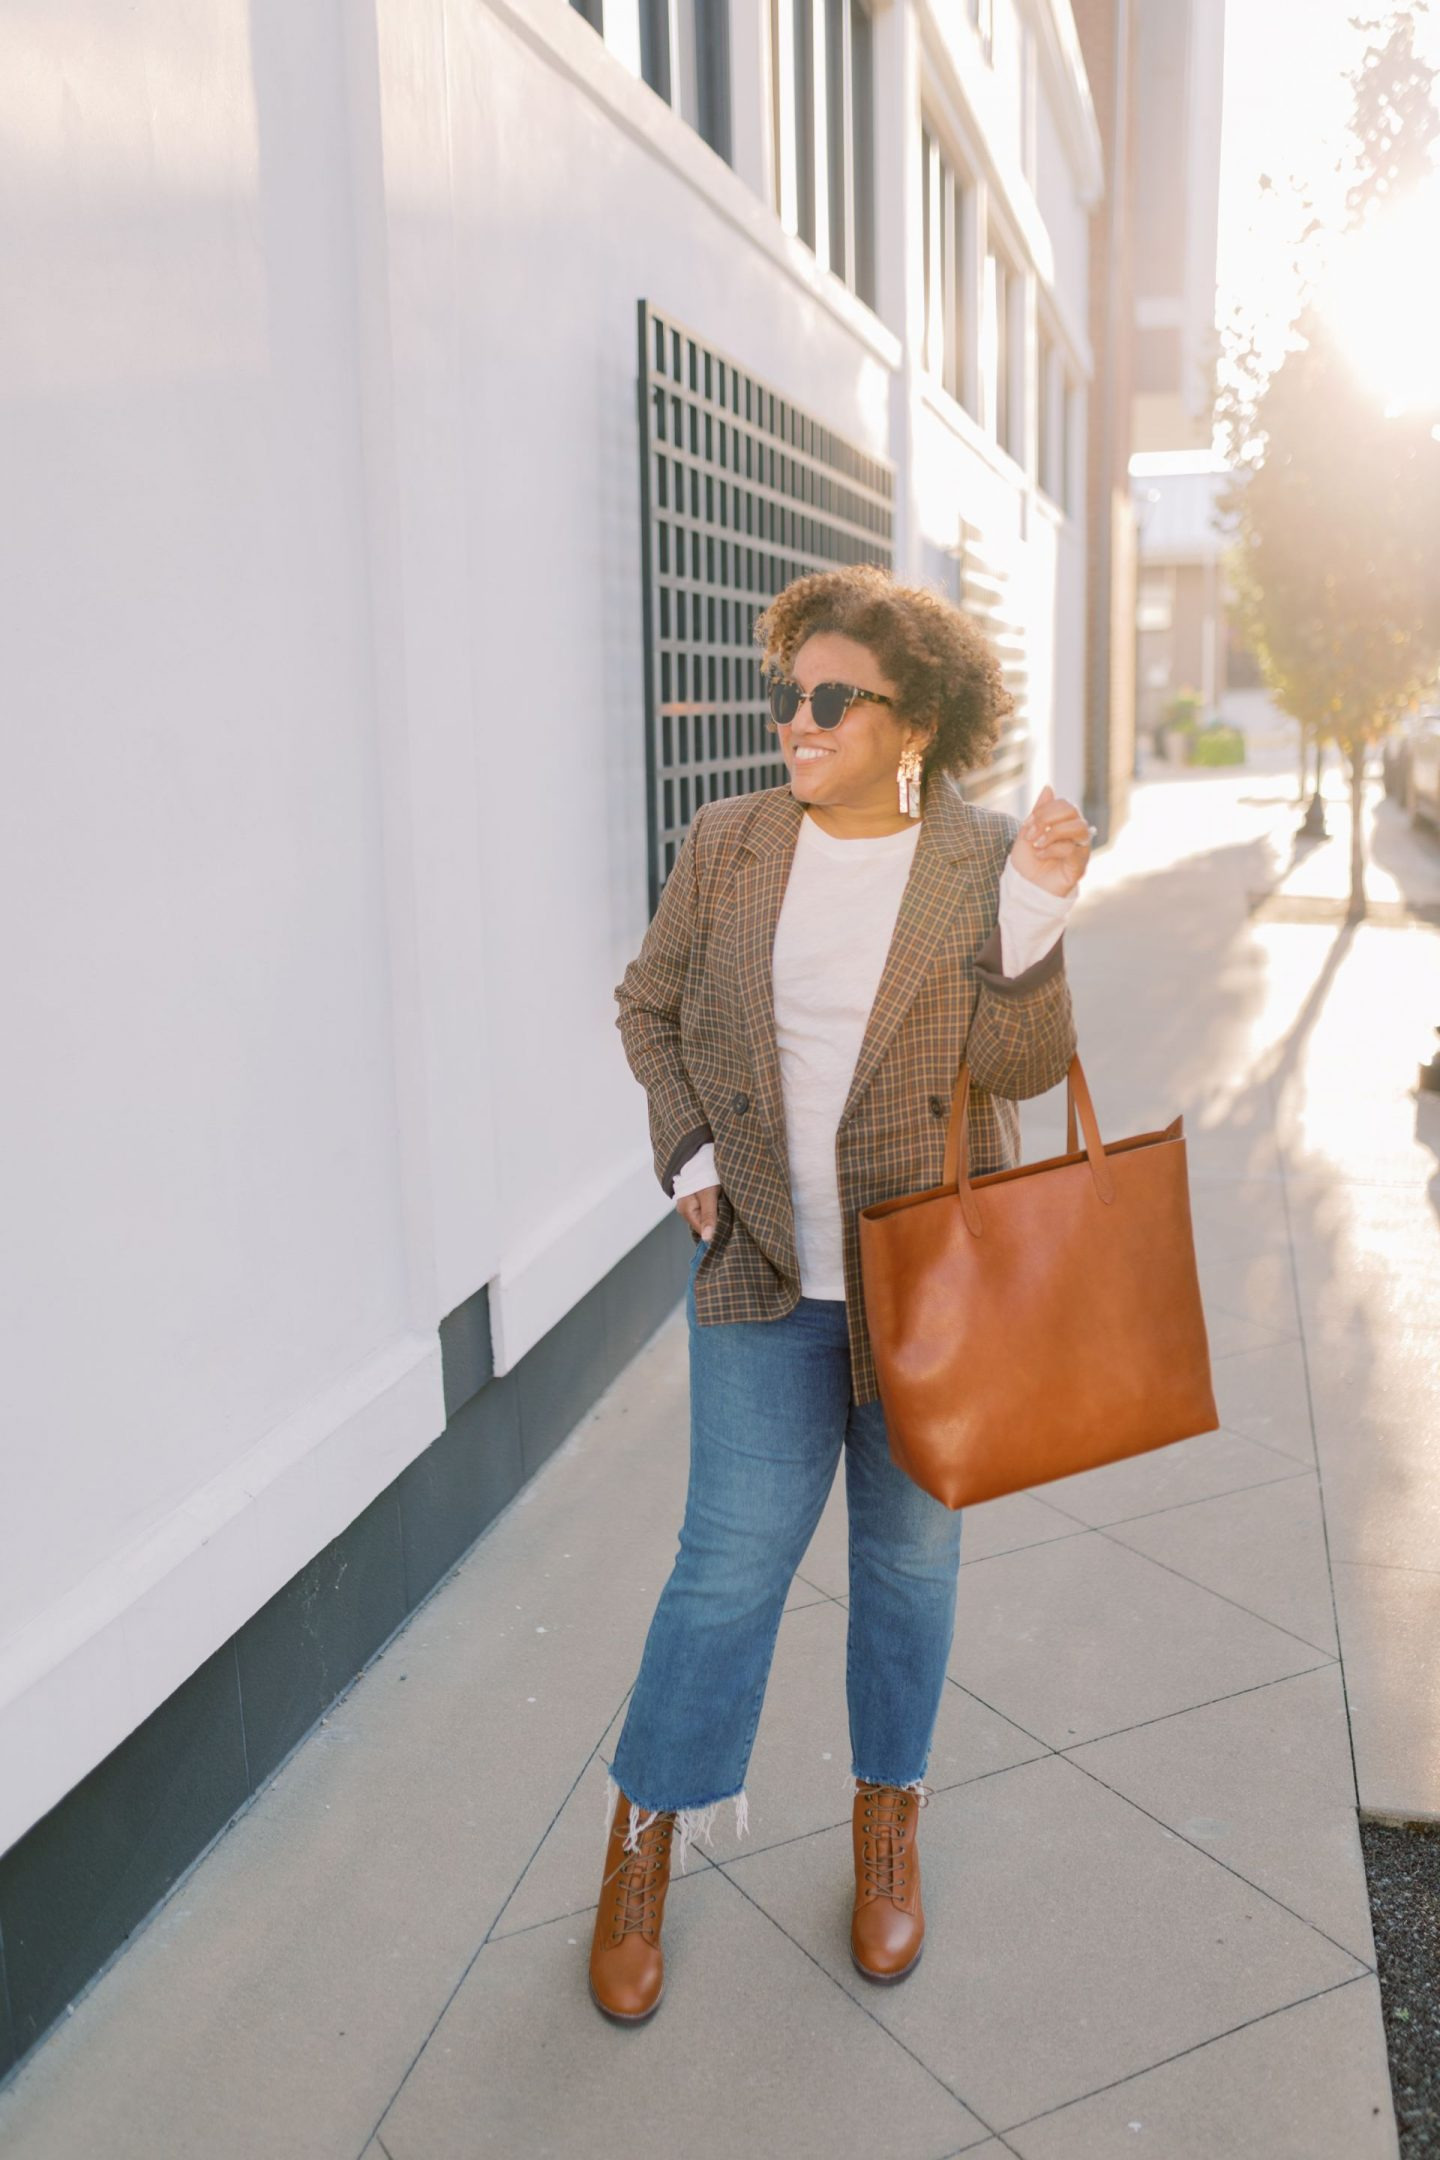 Fall Clothing by popular Kentucky fashion blog, Really Rynetta: image of a woman standing outside and wearing a Madewell Caldwell Double-Breasted Blazer in Mandell Plaid, Madewell Whisper Cotton Rib-Crewneck Long-Sleeve Tee MEDIA, Madewell Cali Demi-Boot Jeans in Fleetwood Wash, Madewell The Patti Lace-Up Boot, Madewell The Zip-Top Transport Carryall, and Kendra Scott Holland Statement Earrings In Vintage Gold.